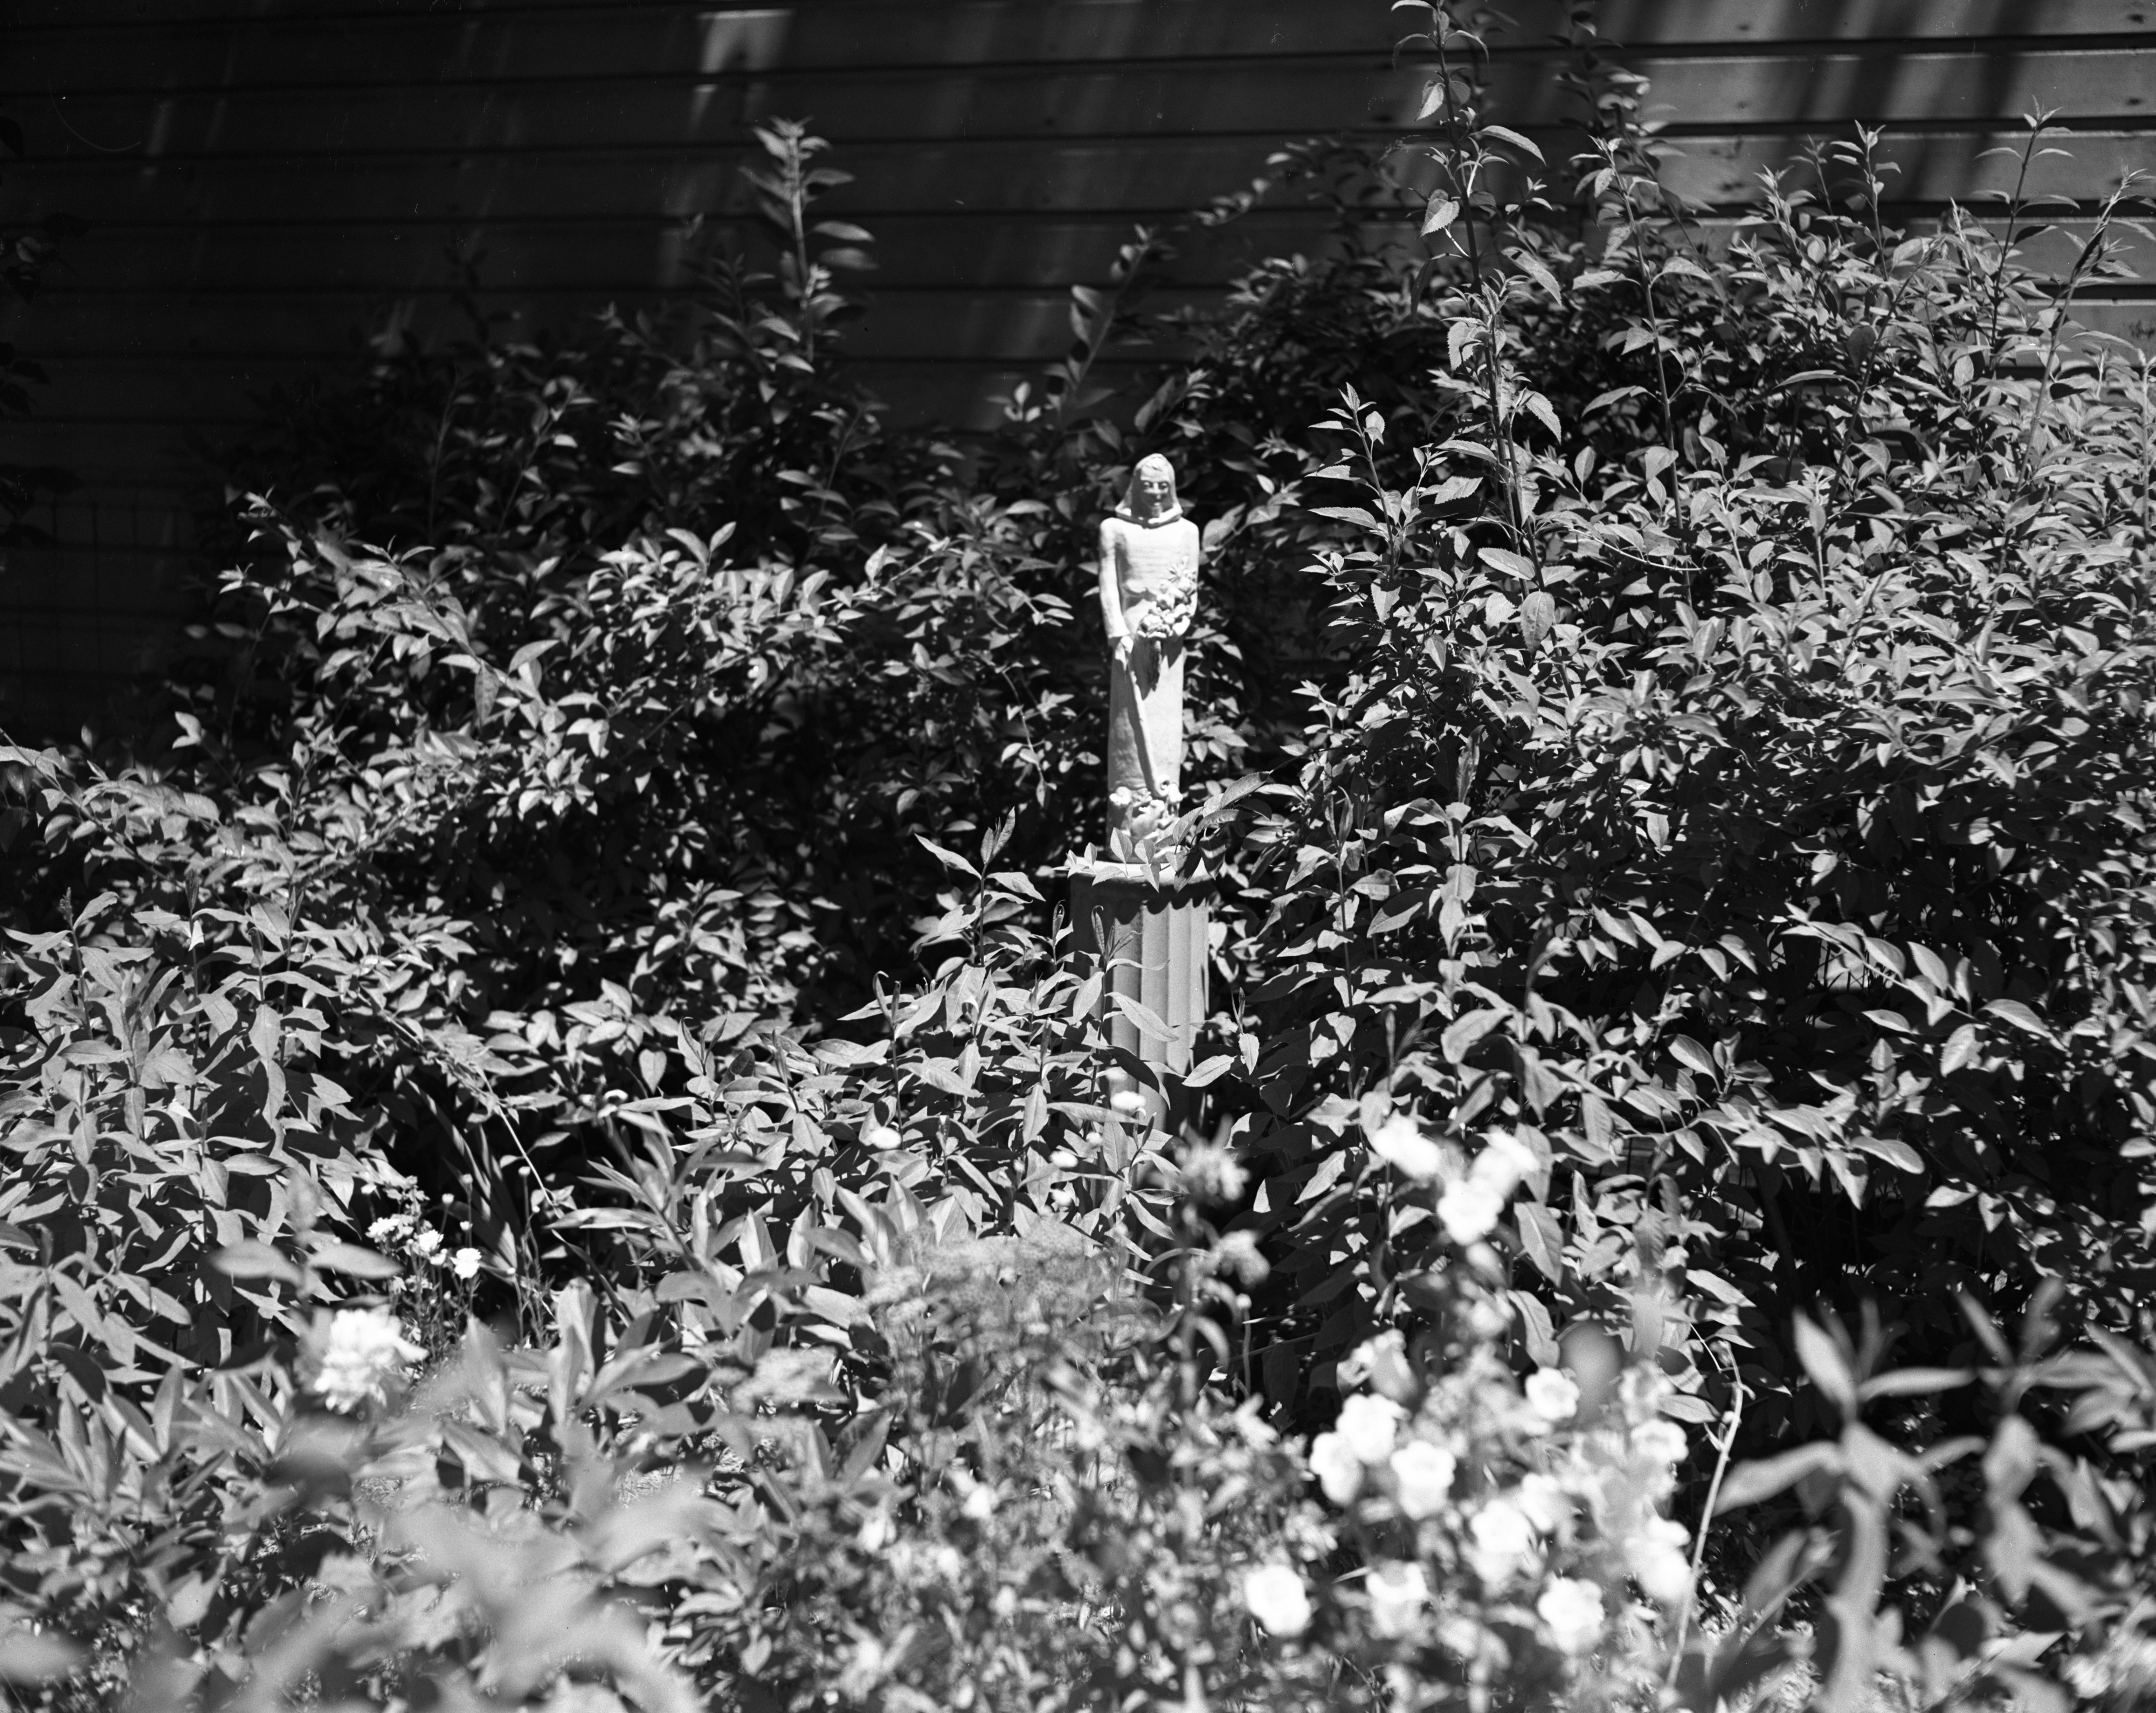 Goddess of Gardens in Clement Luke's garden, 114 N. Ingalls St., July 1947 image